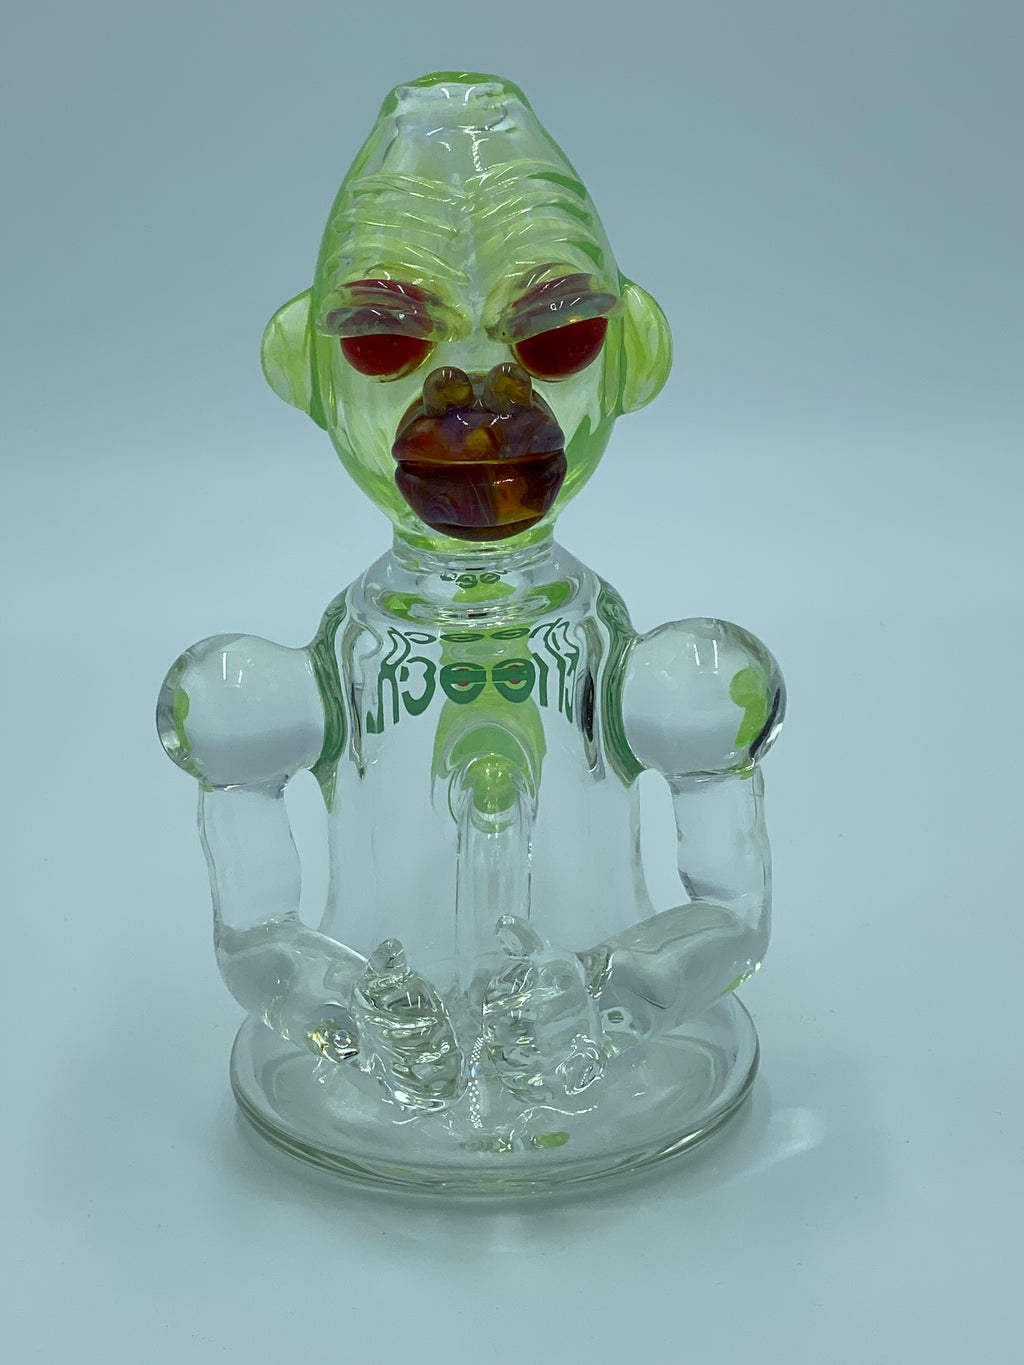 Cheech Glass Gorilla Percolator - Smoke Country - Land of the artistic glass blown bongs